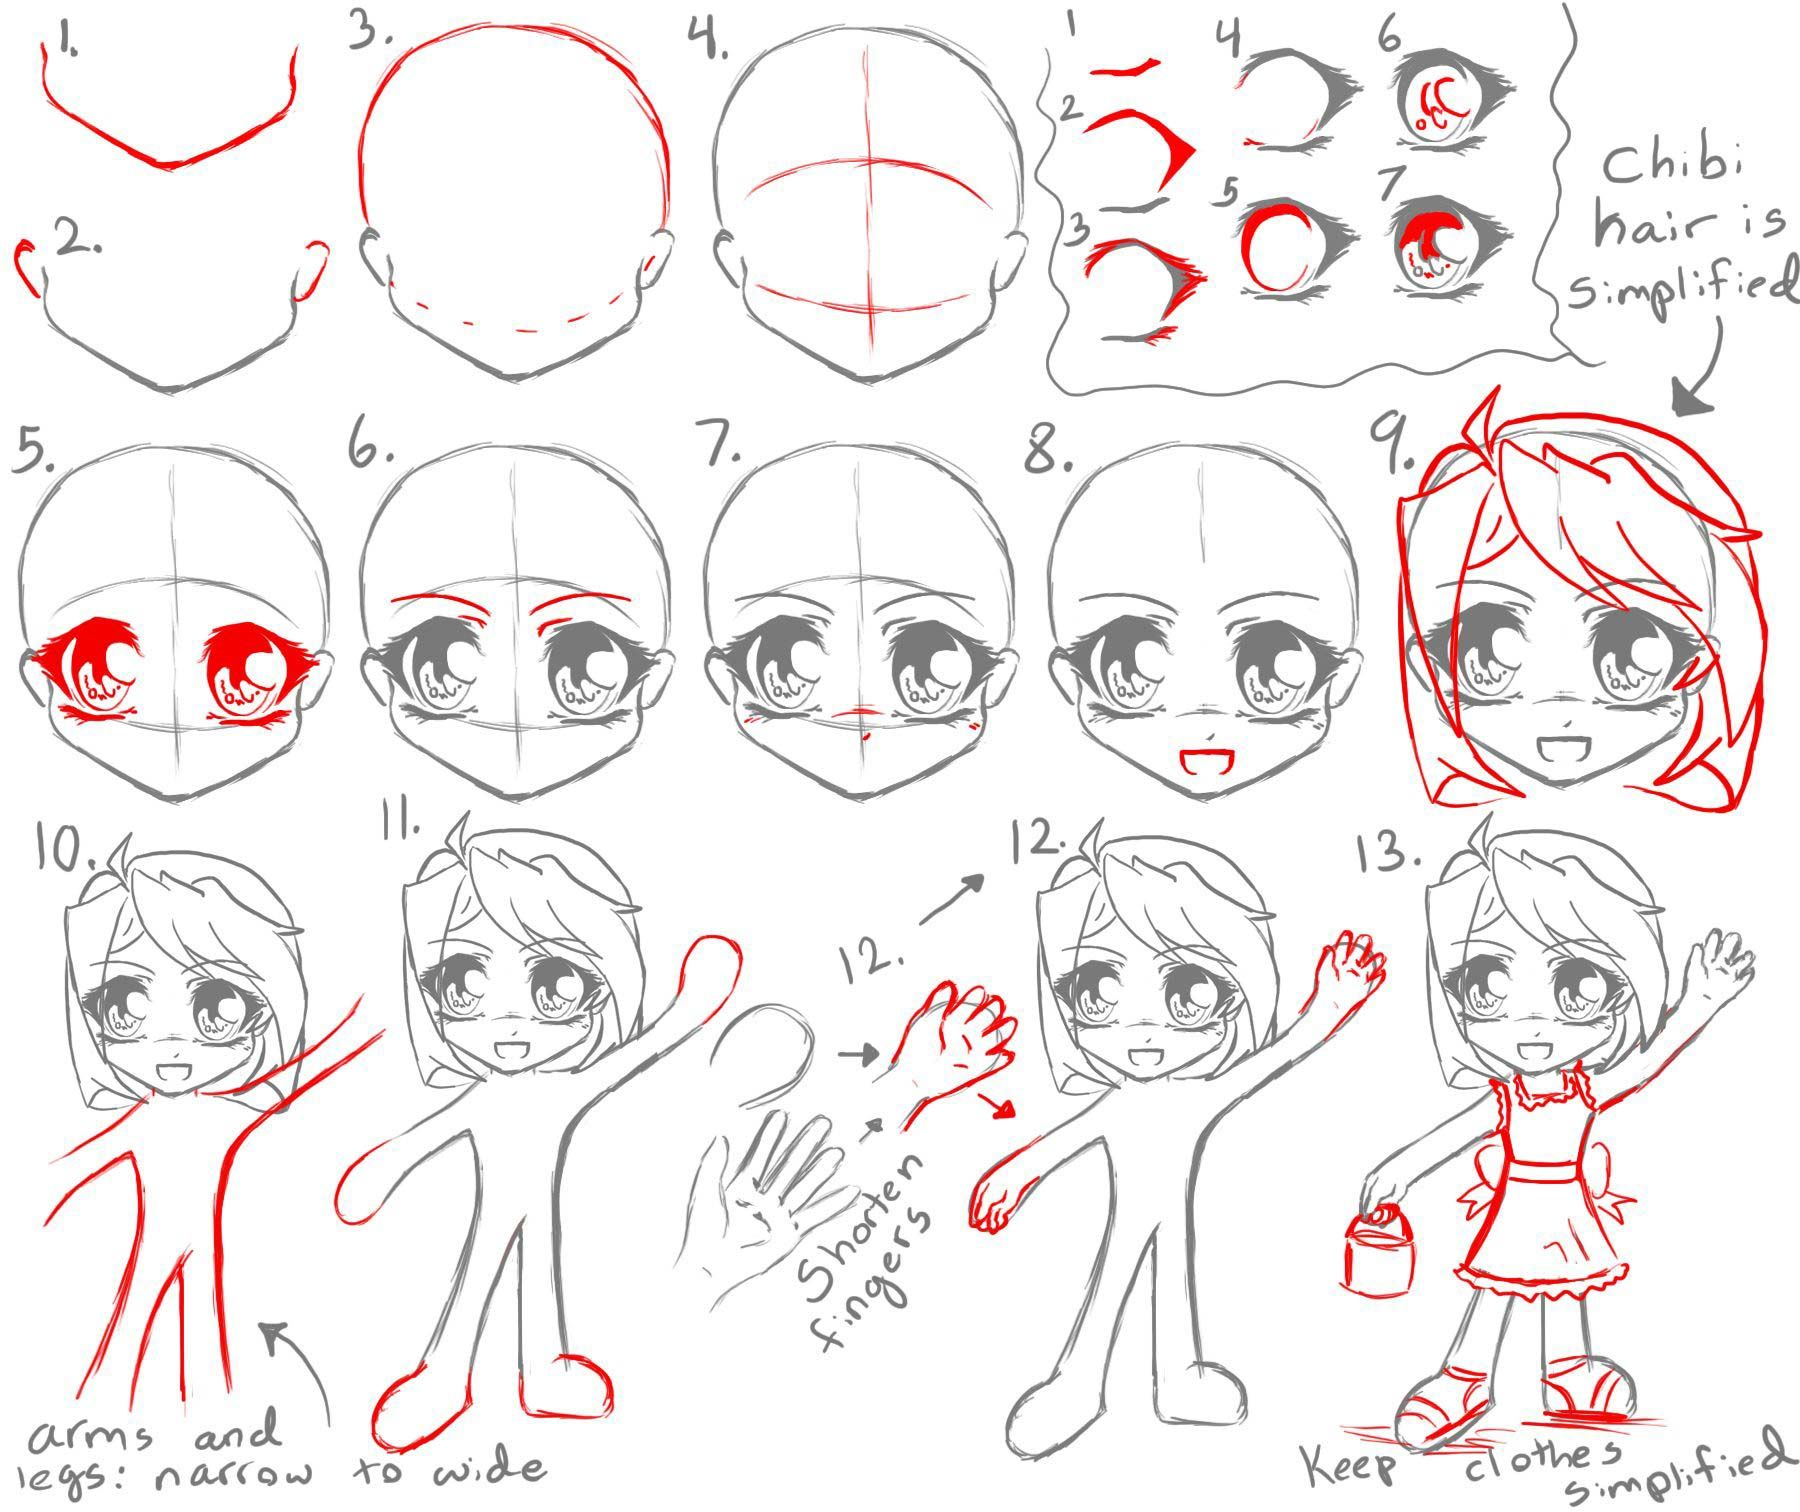 Chibi Drawing Reference And Sketches For Artists In 2020 Chibi Drawings Drawings Chibi